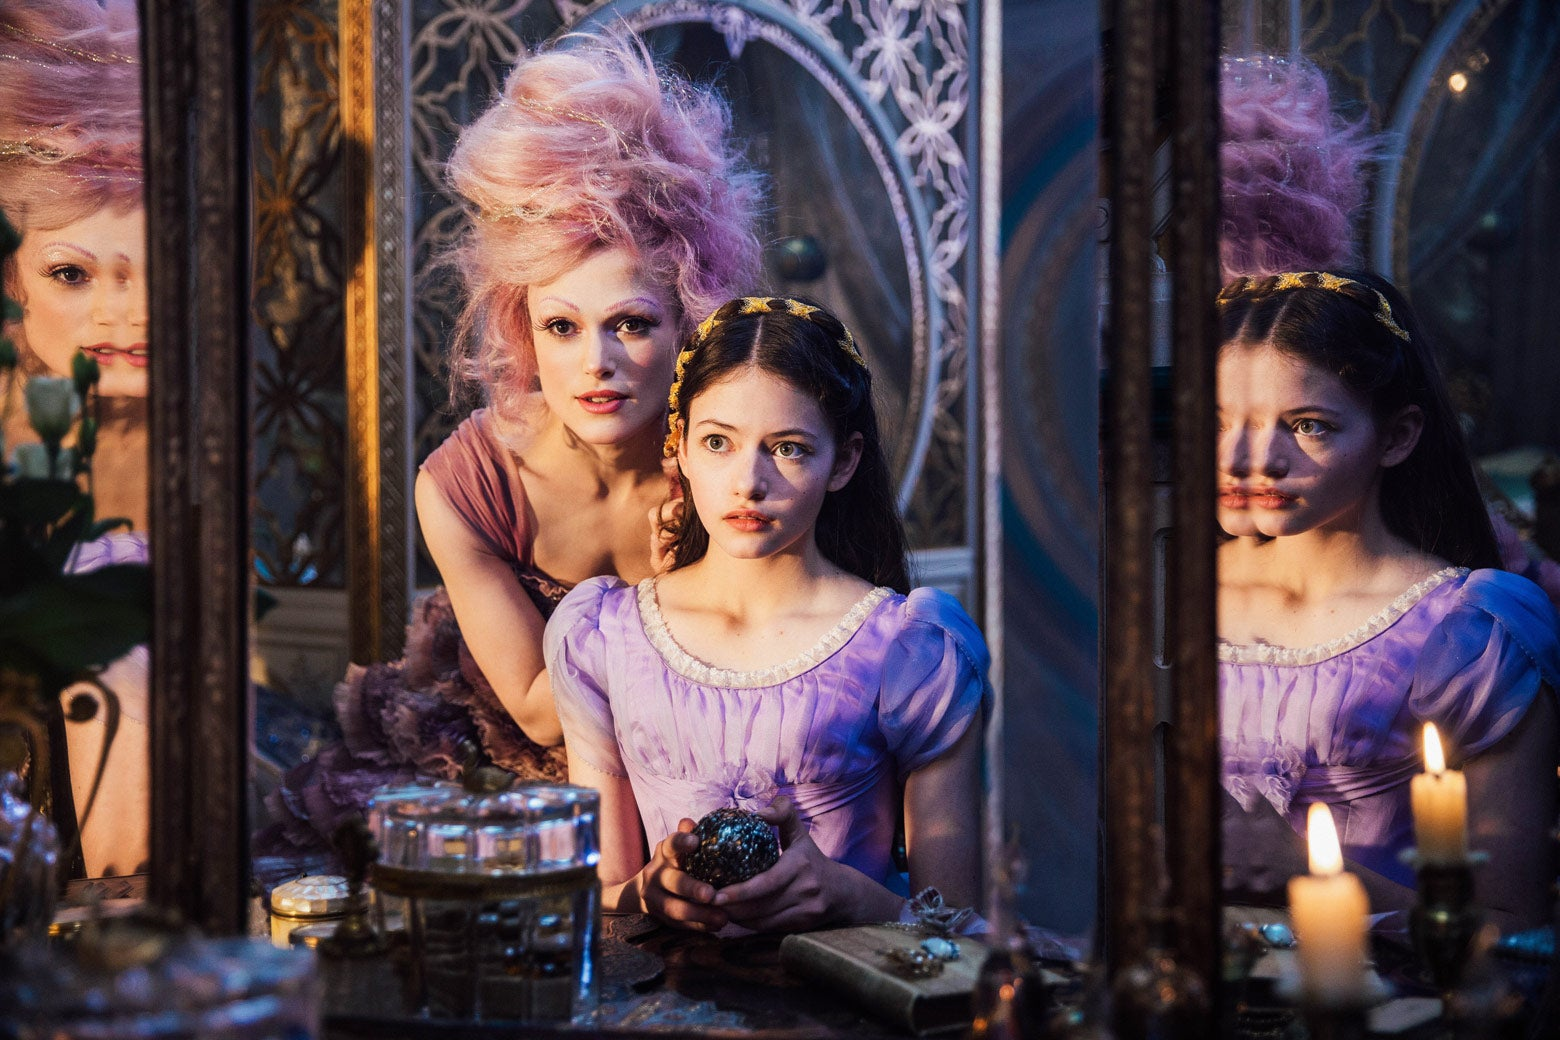 Keira Knightley as the Sugar Plum Fairy and Mackenzie Foy as Clara.